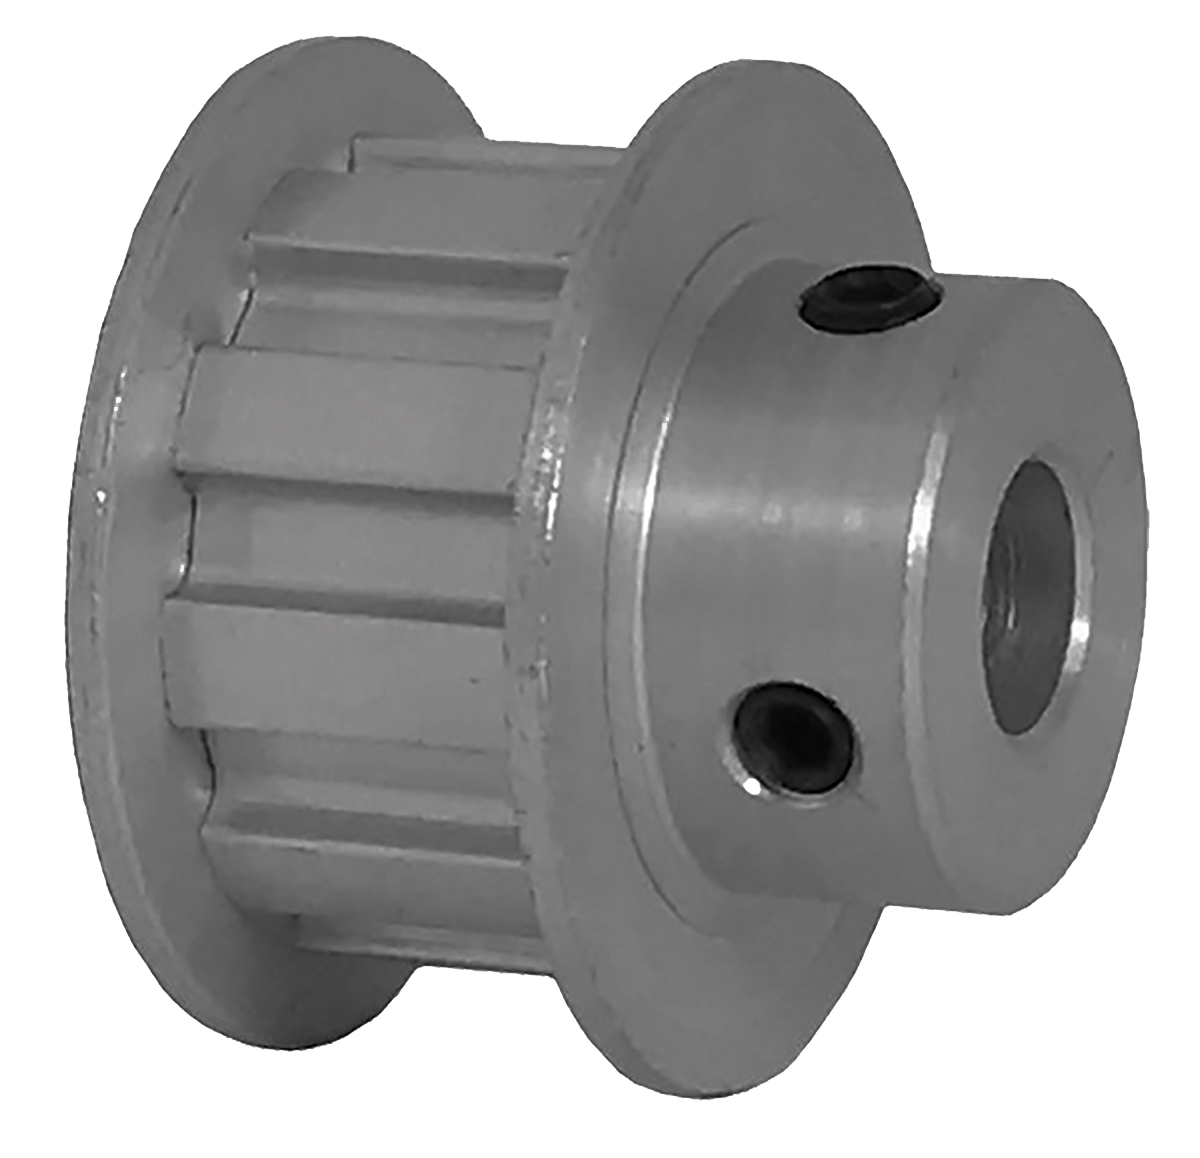 10L050-6FA5 - Aluminum Imperial Pitch Pulleys